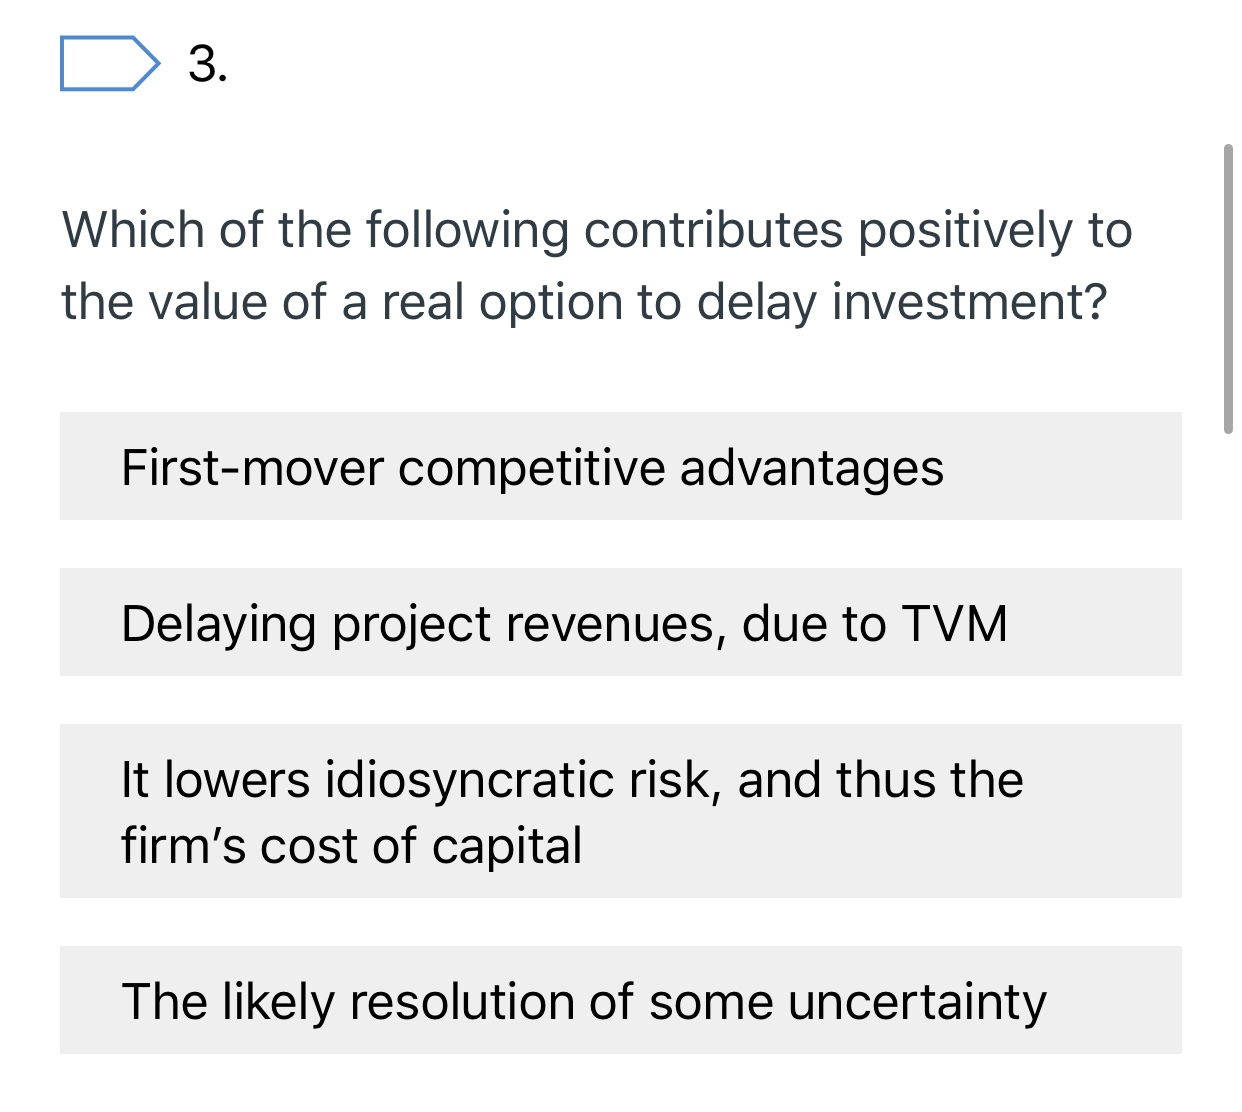 3. Which of the following contributes positively to the value of a real option to delay investment? First-mover competitive advantages Delaying project revenues, due to TVM It lowers idiosyncratic risk, and thus the firm's cost of capital The likely resolution of some uncertainty